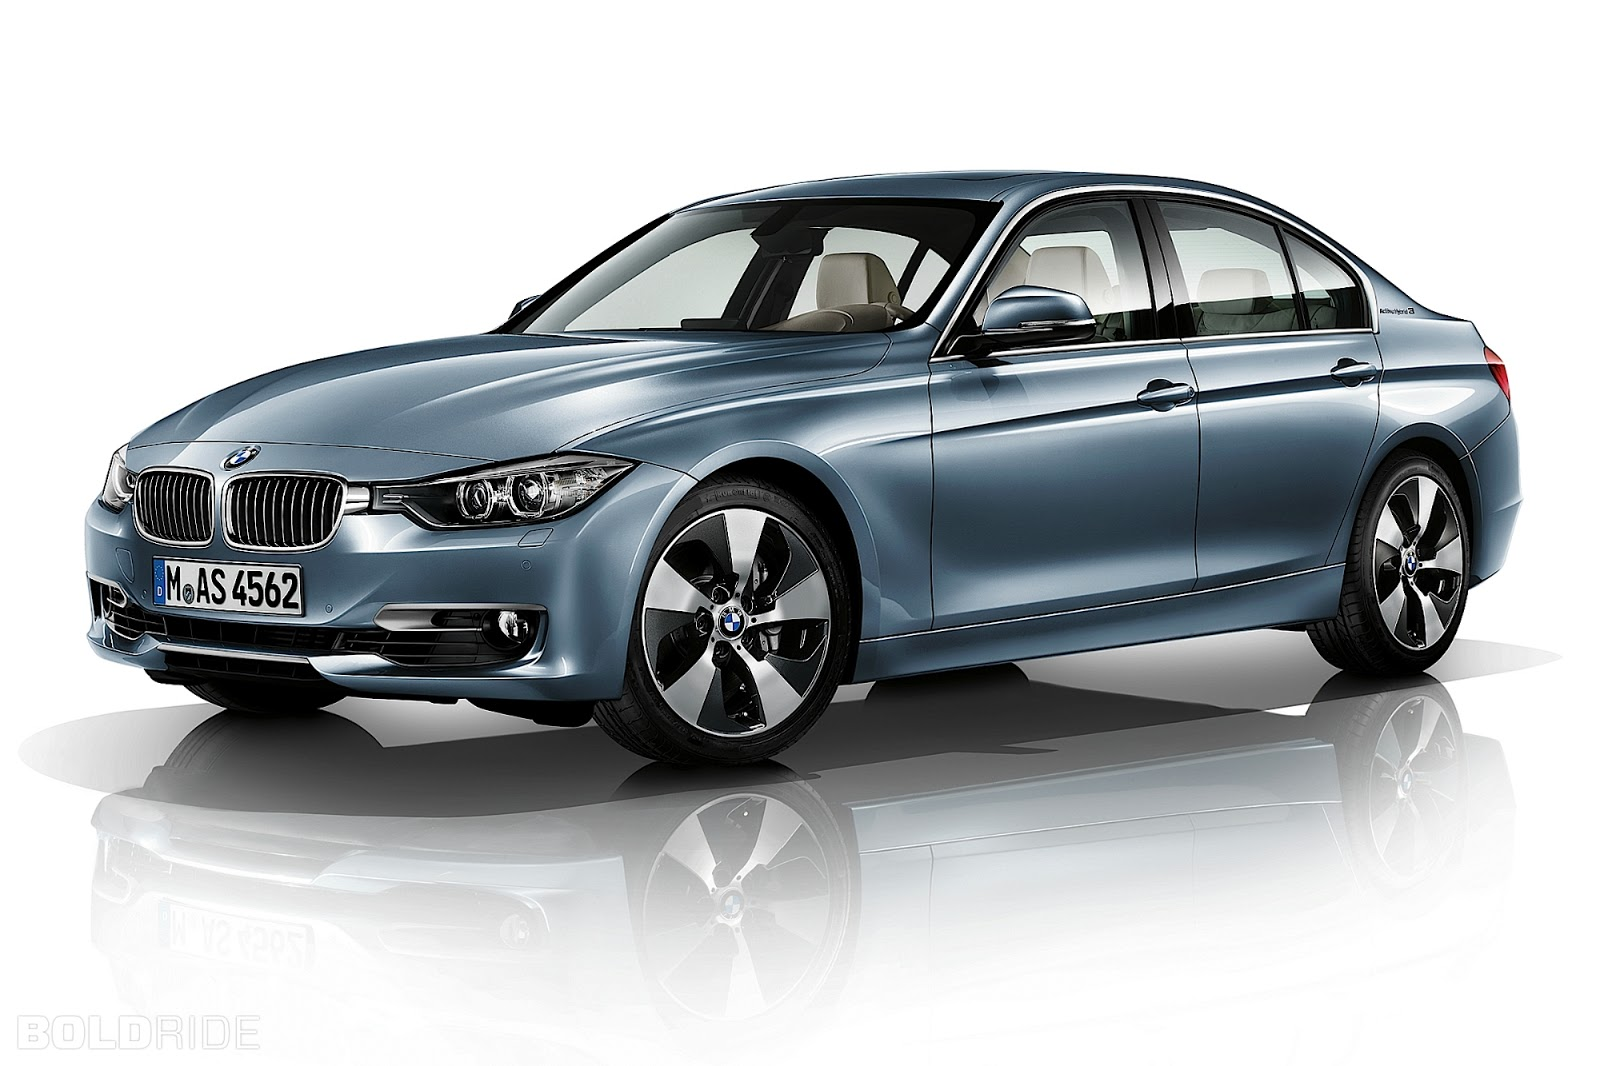 2012 bmw 3 series activehybrid front view